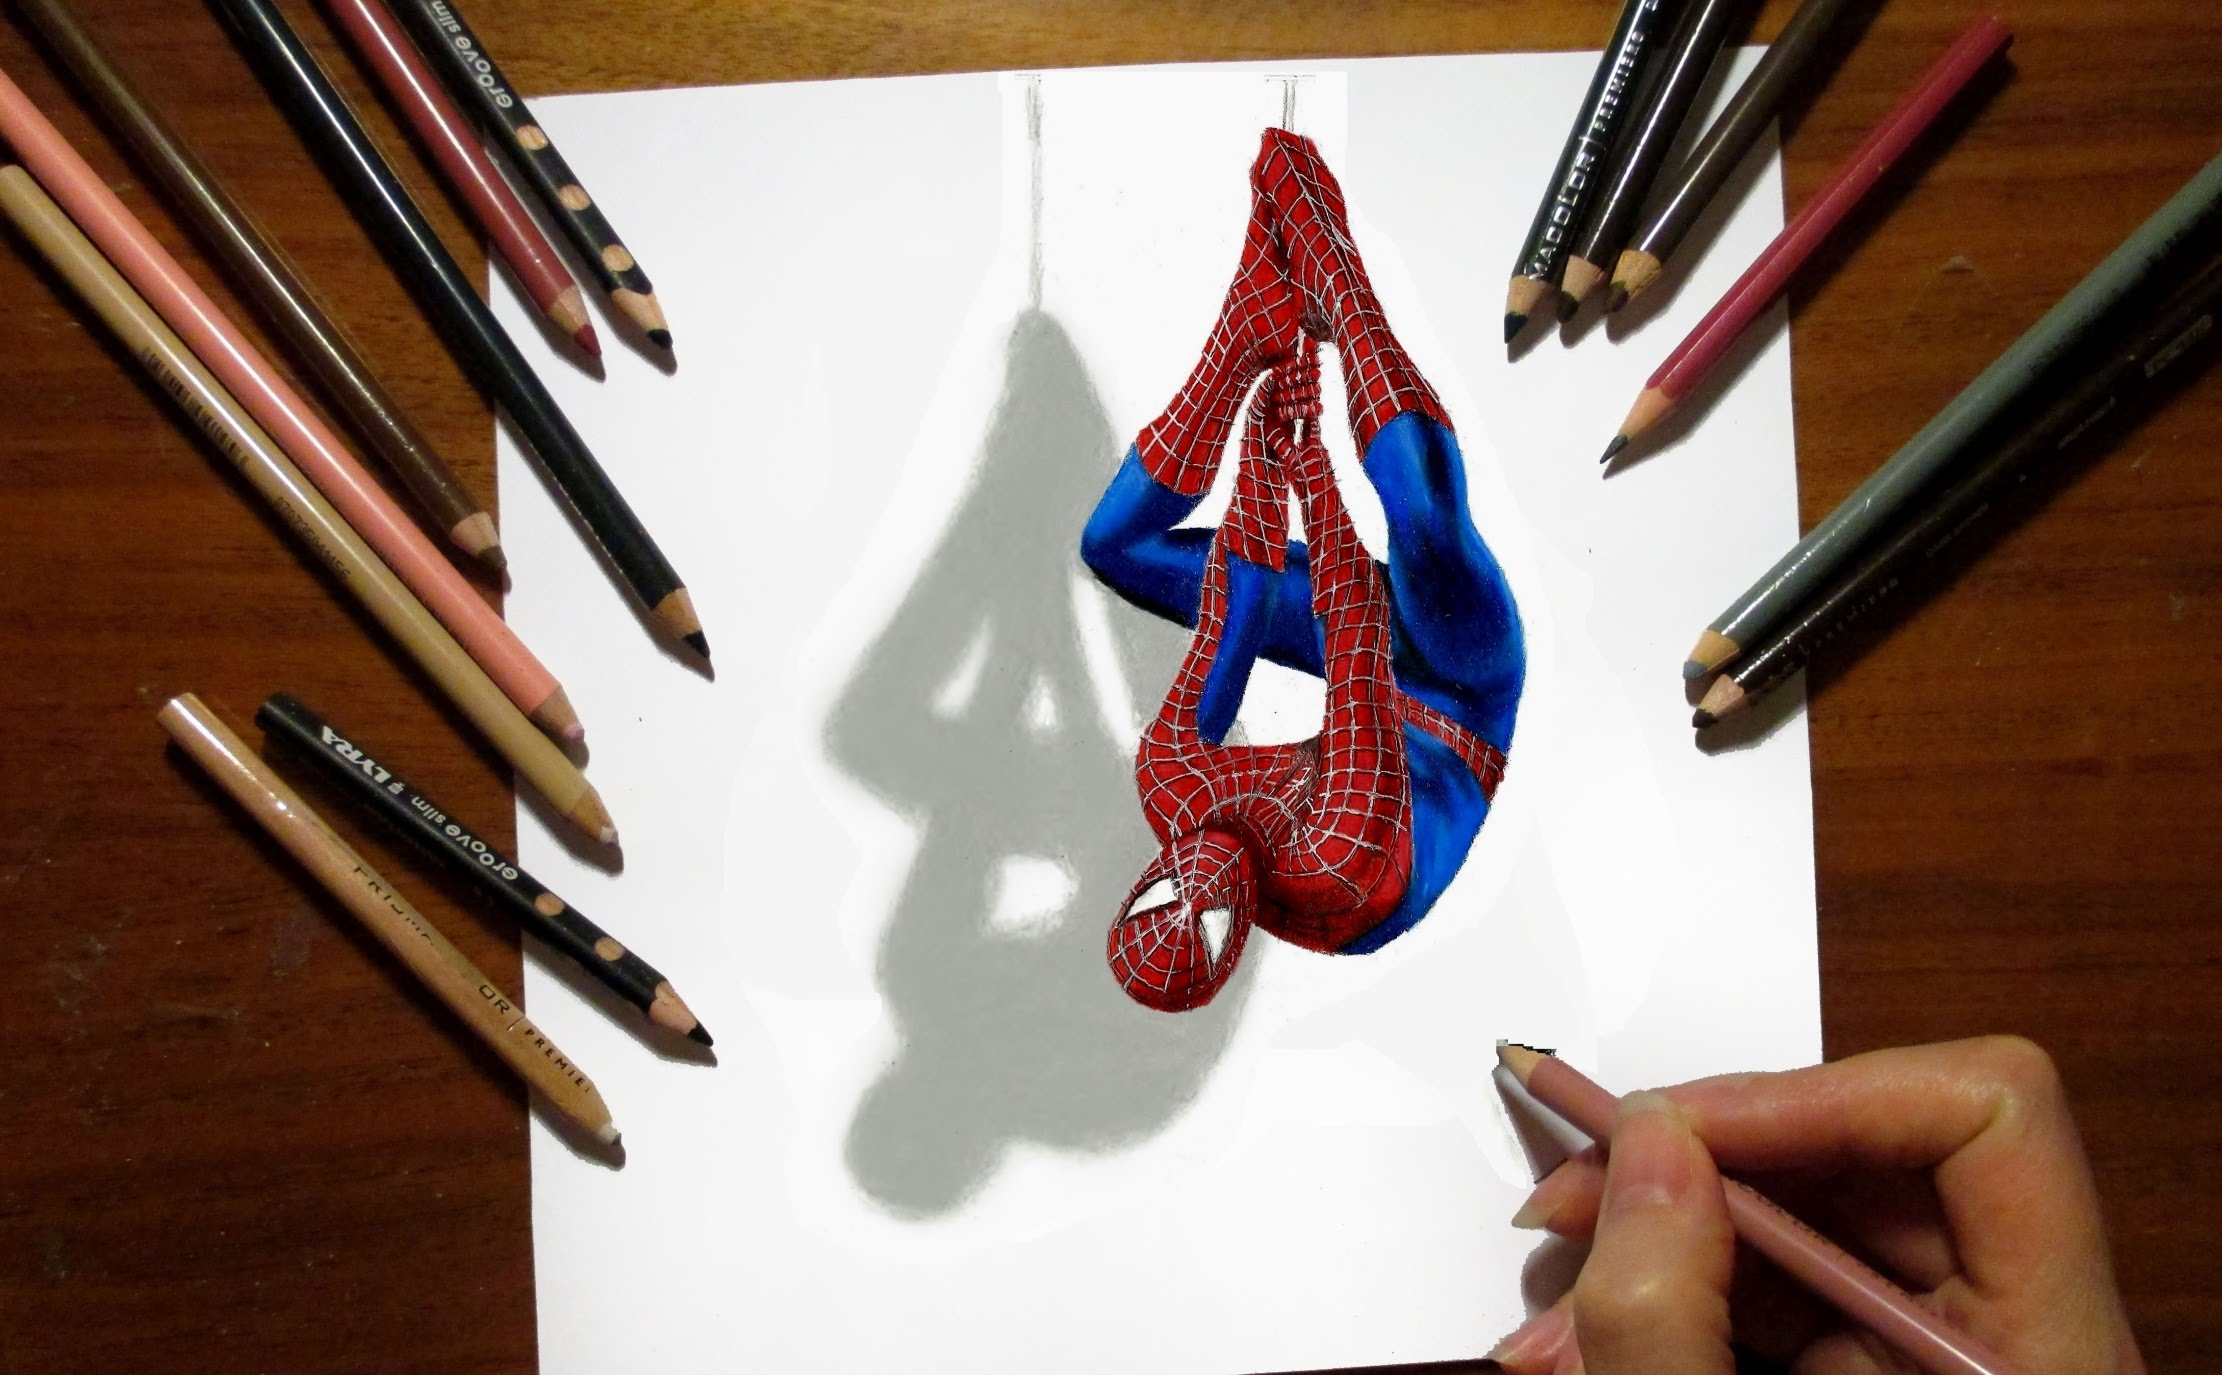 Drawn spider illustration Of Spider 3D Amazing Man